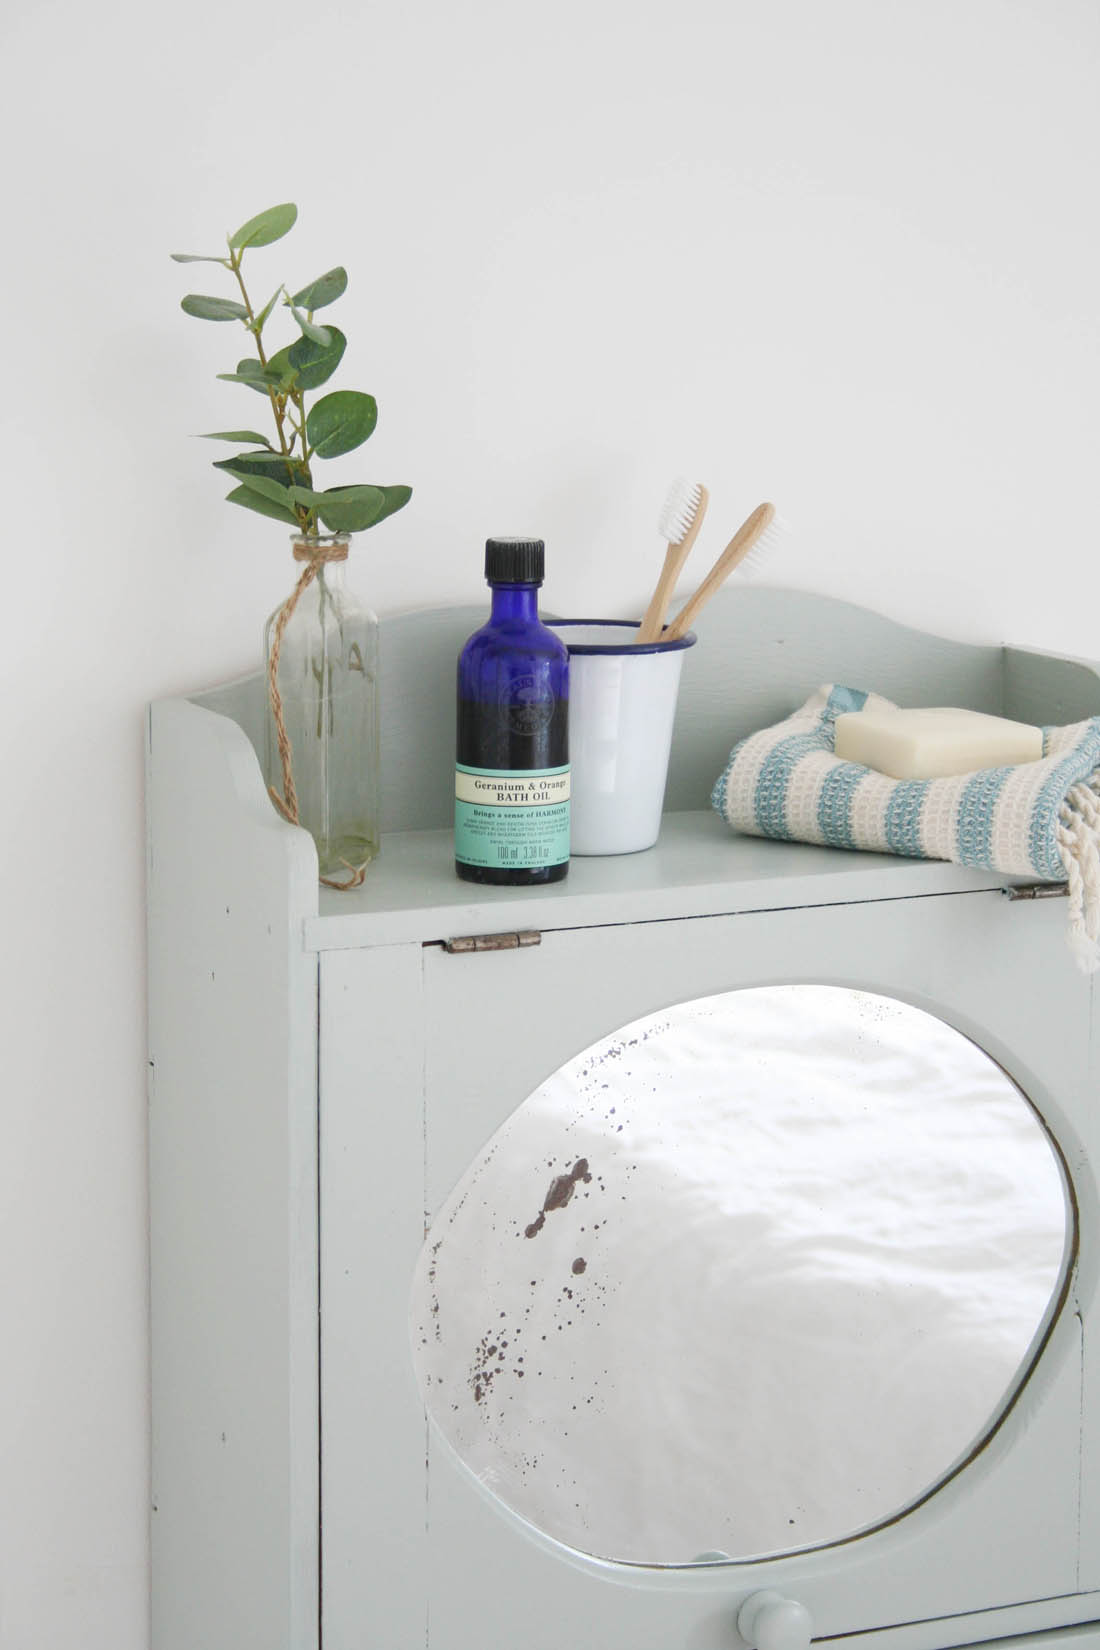 Tips for painting wooden furniture |Vintage bathroom cabinet | Apartment Apothecary